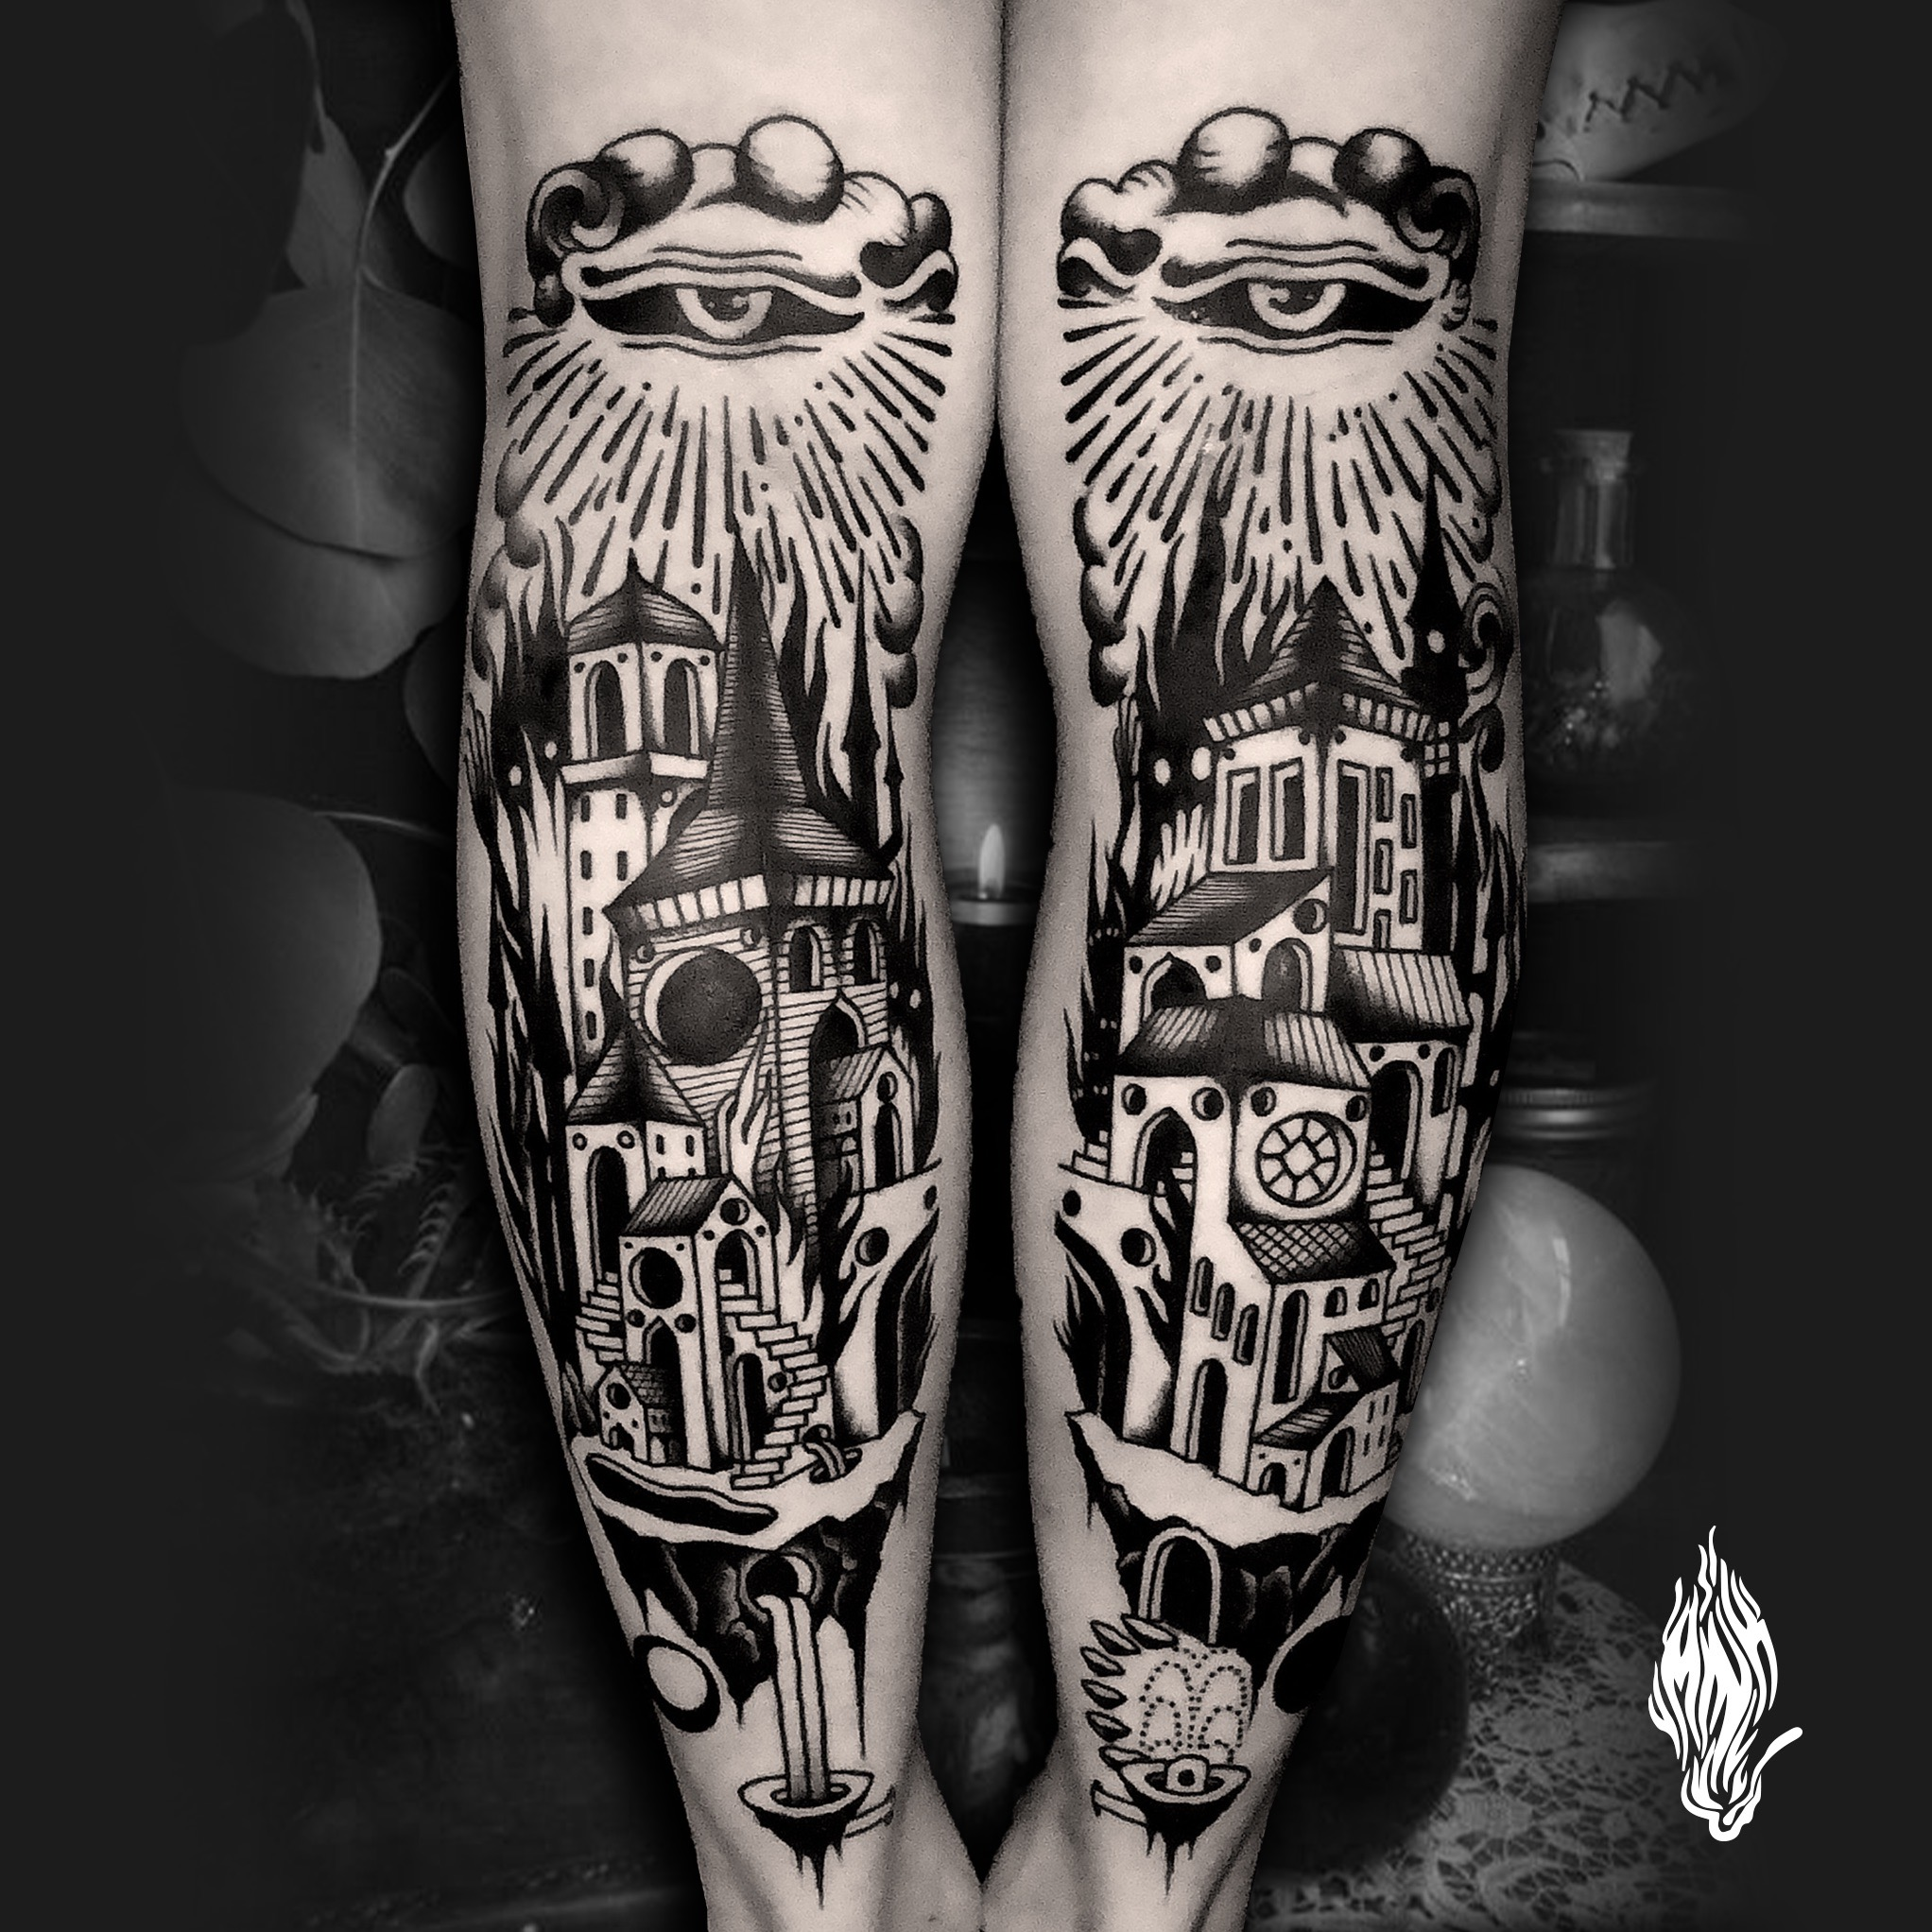 Mink Bell • Flying town réalisé chez Freak Chic Tattoo @freak_chic_bulle